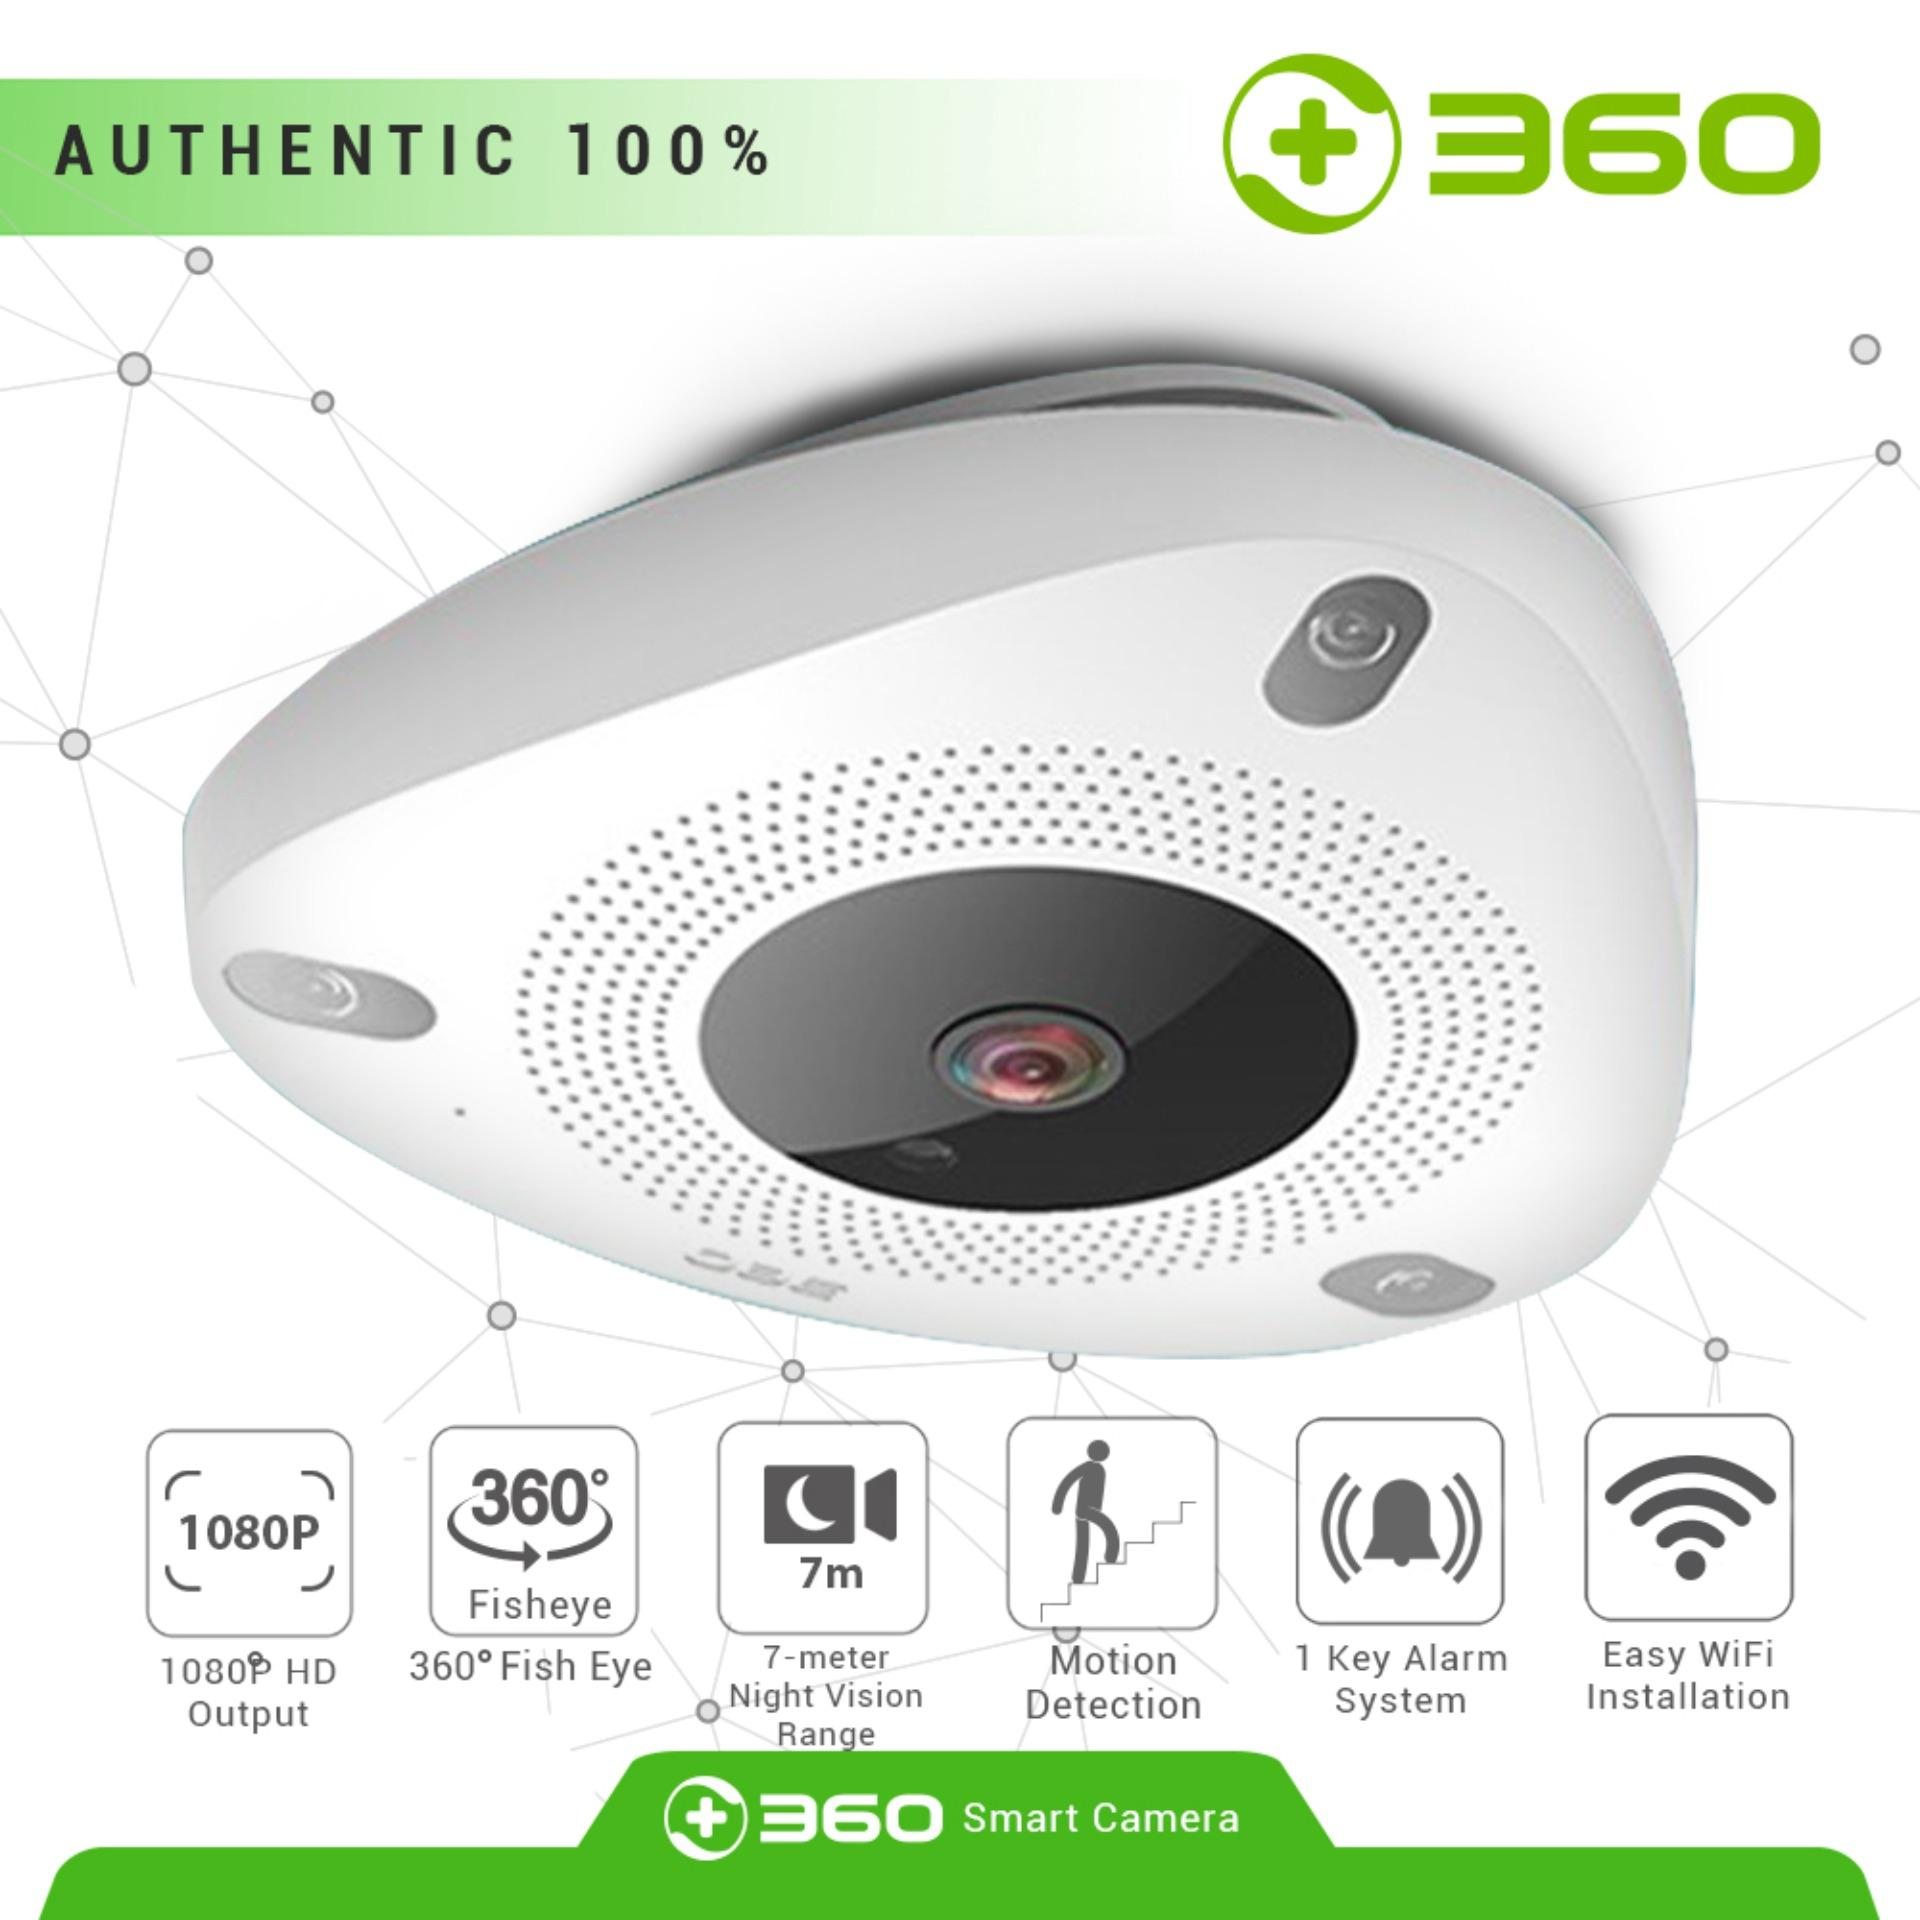 Qihoo 360 D606 Home Security Camera IP Camera 1080P Full HD Mini IP CCD  Motion Detection - 2 Way Audio Wireless WiFi Infrared Security Camera